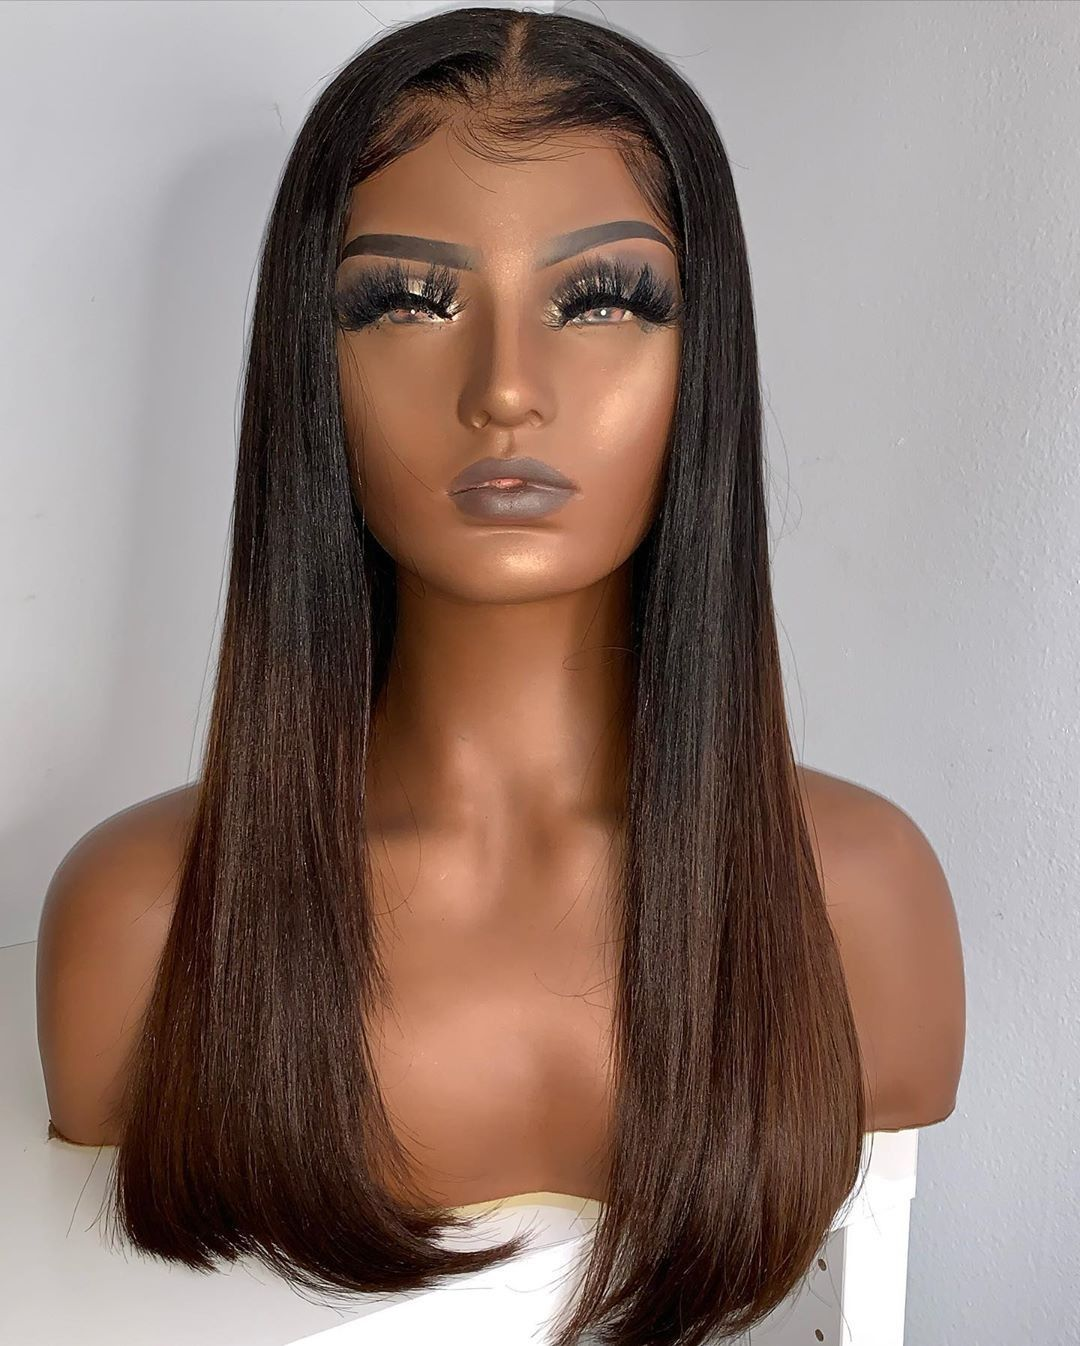 Straight Wigs Lace Front Yaki Hair Wig Middle Part Straight Hair Weave Black Pigtail Wig With Bangs Pink Straight Hair